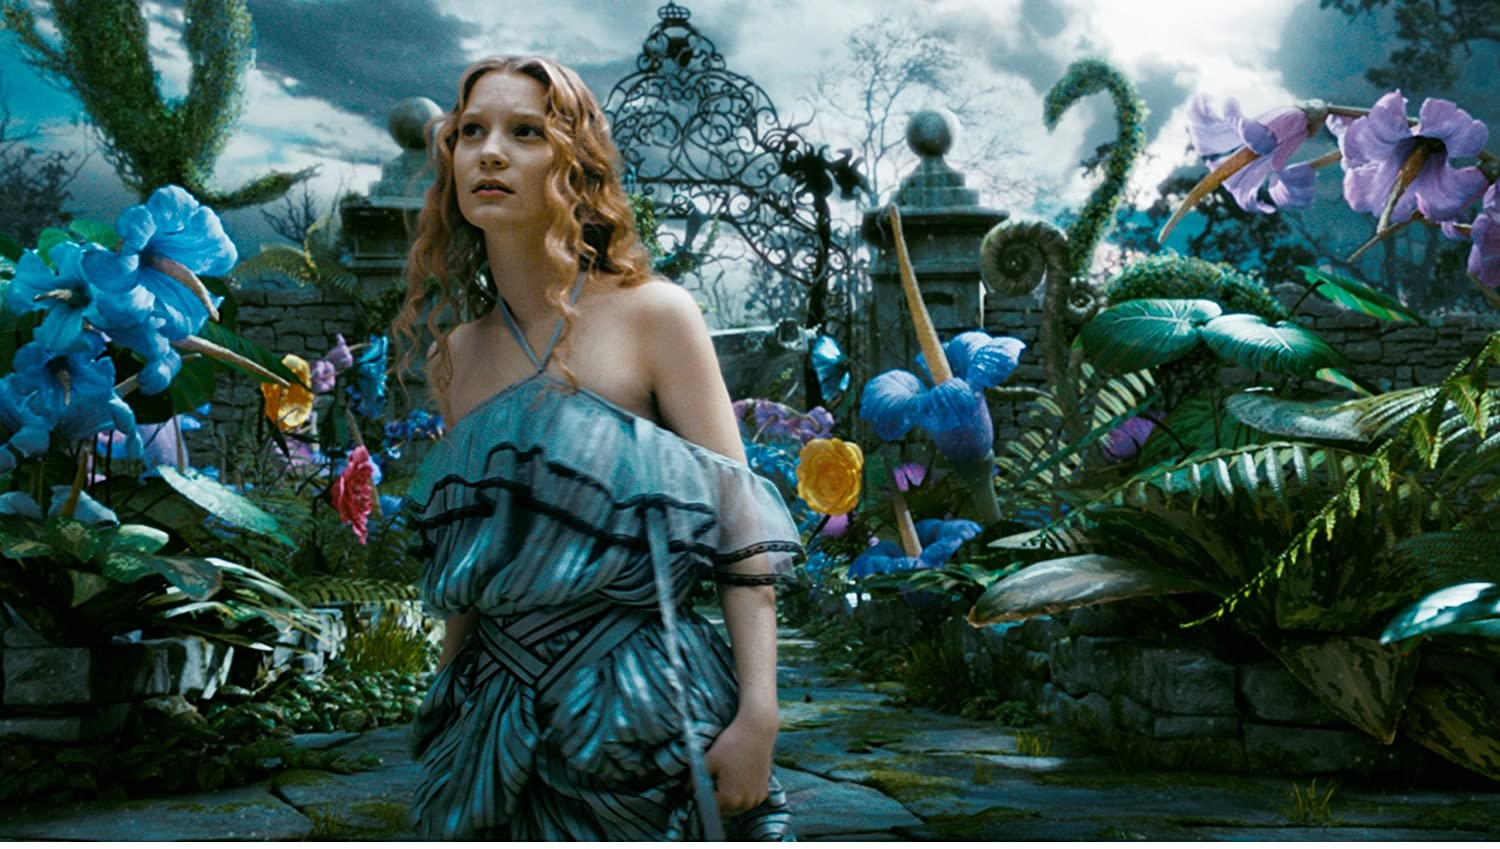 Alice in Wonderland Johnny Depp Mia Wasikowska Anne